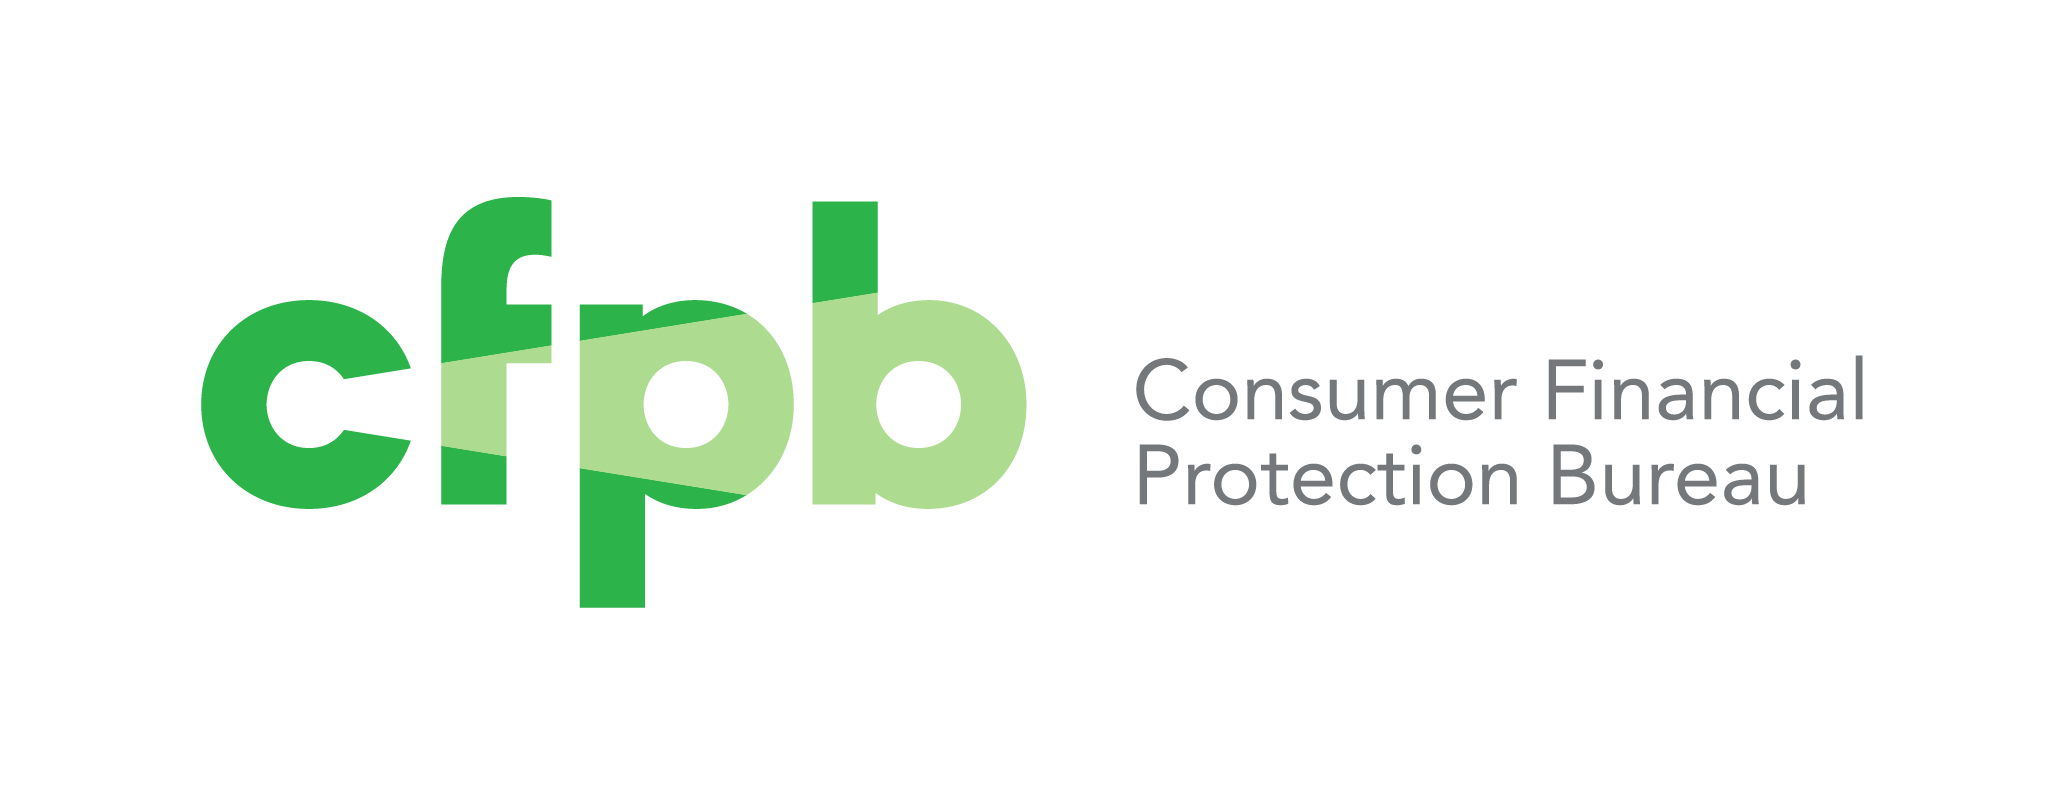 The Consumer Financial Protection Bureau (CFPB) issued an interim final rule and a proposed rule to provide mortgage servicers designed to alleviate and clarify requirements related to communicating with borrowers